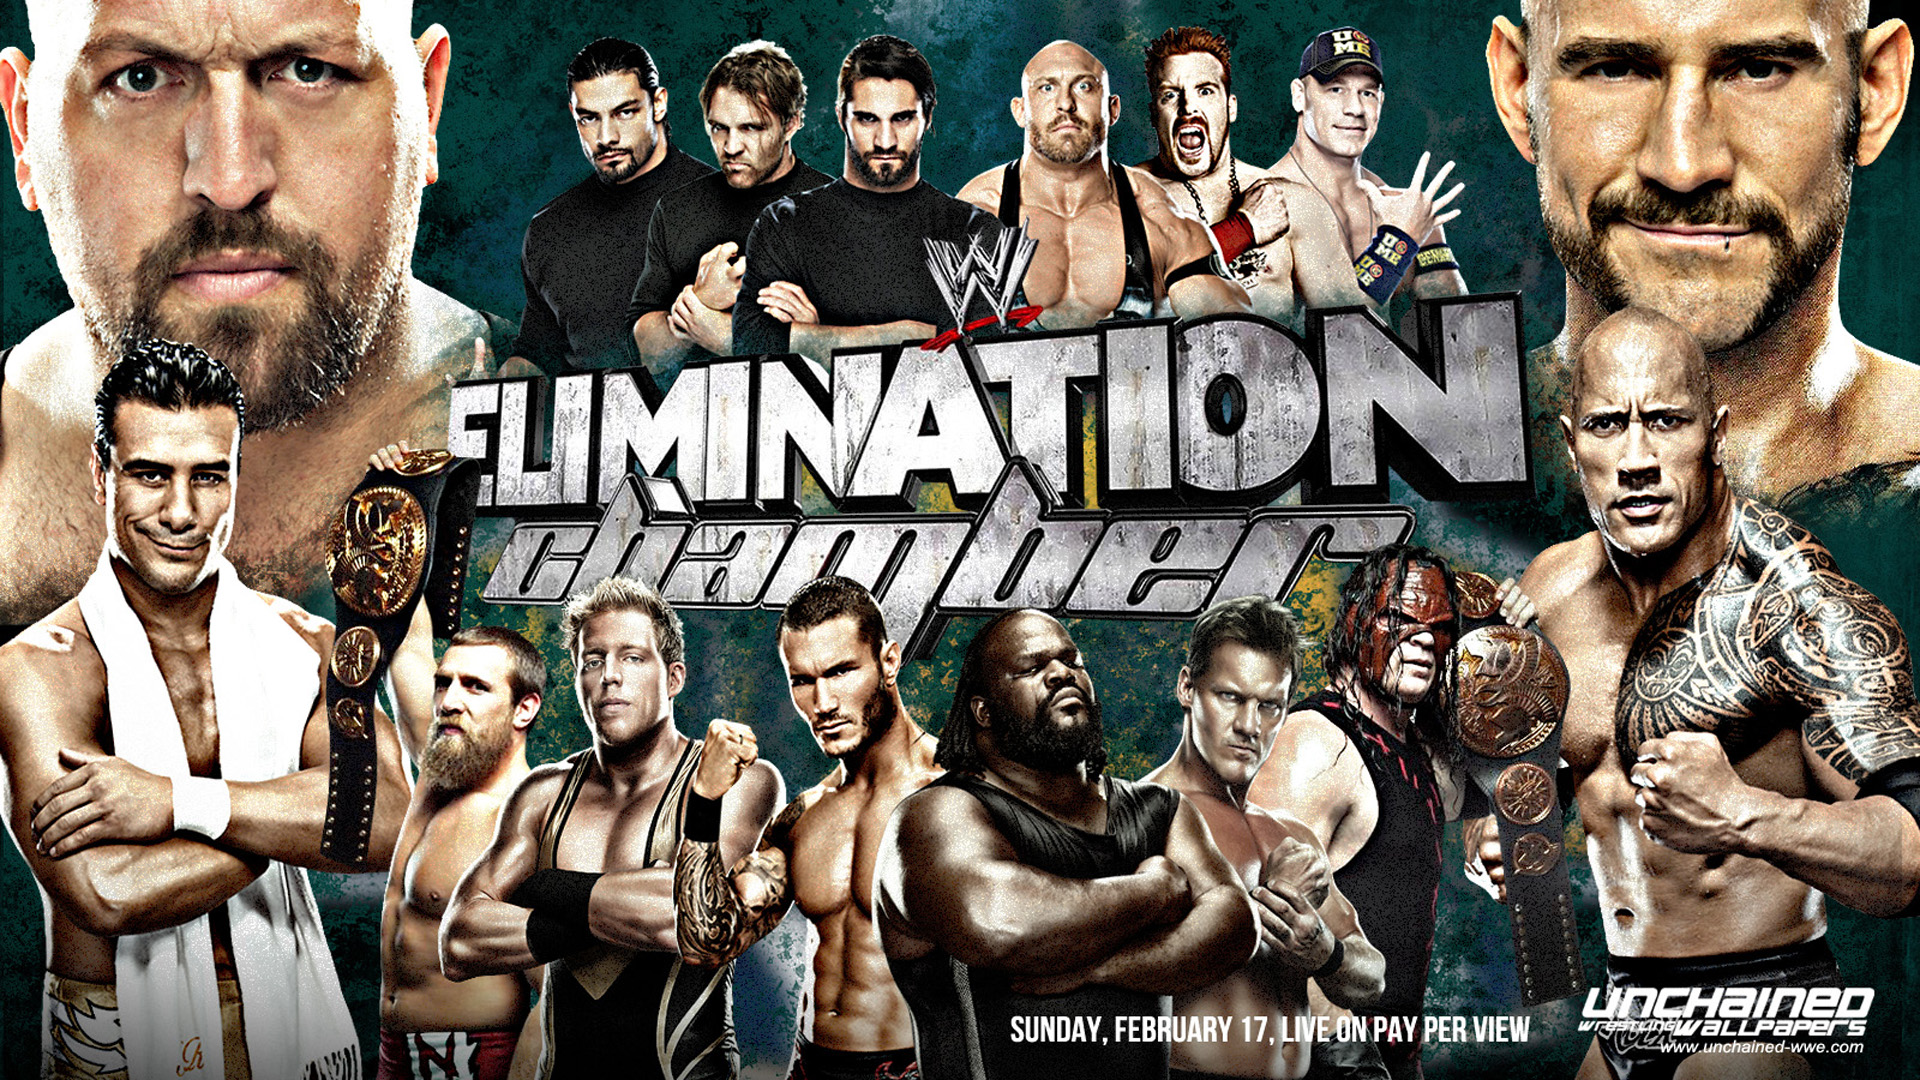 WWE Elimination Chamber 2013 Wallpaper 1920x1080